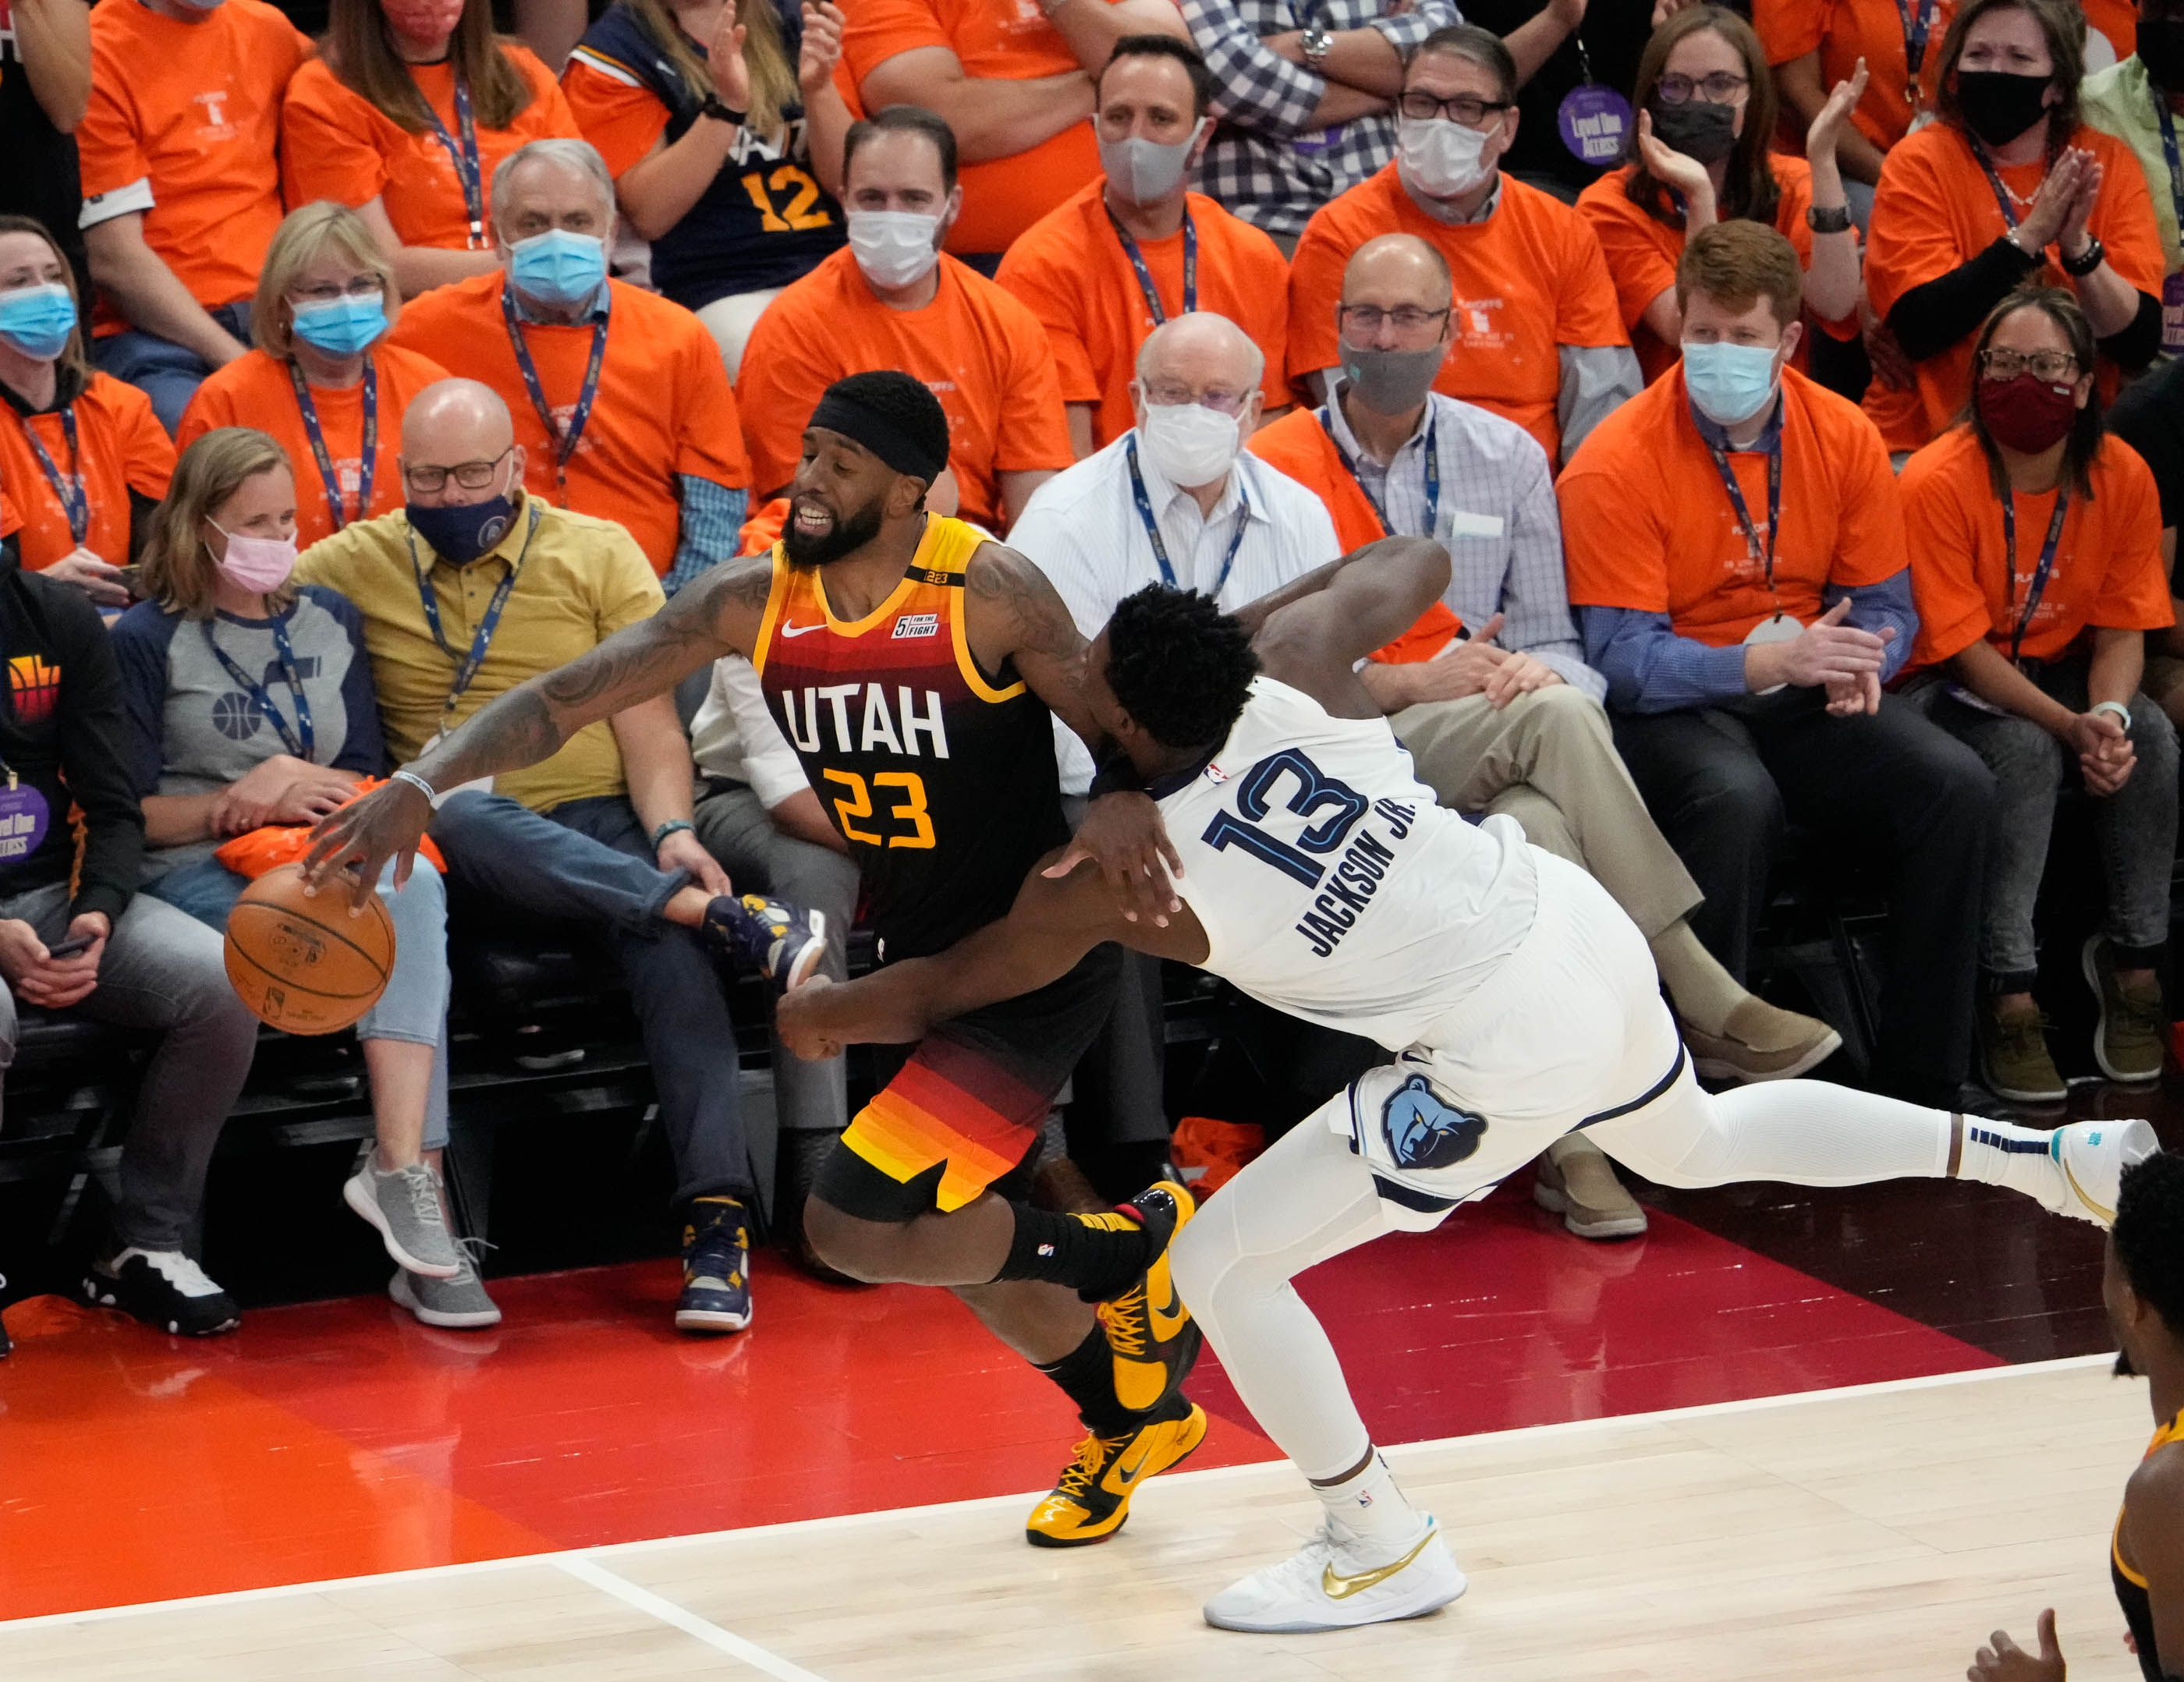 (Francisco Kjolseth | The Salt Lake Tribune) Utah Jazz forward Royce O'Neale (23) is fouled by Memphis Grizzlies forward Jaren Jackson Jr. (13) in the first half of Game 5 of an NBA basketball first-round playoff series Wednesday, June 2, 2021, in Salt Lake City, UT.